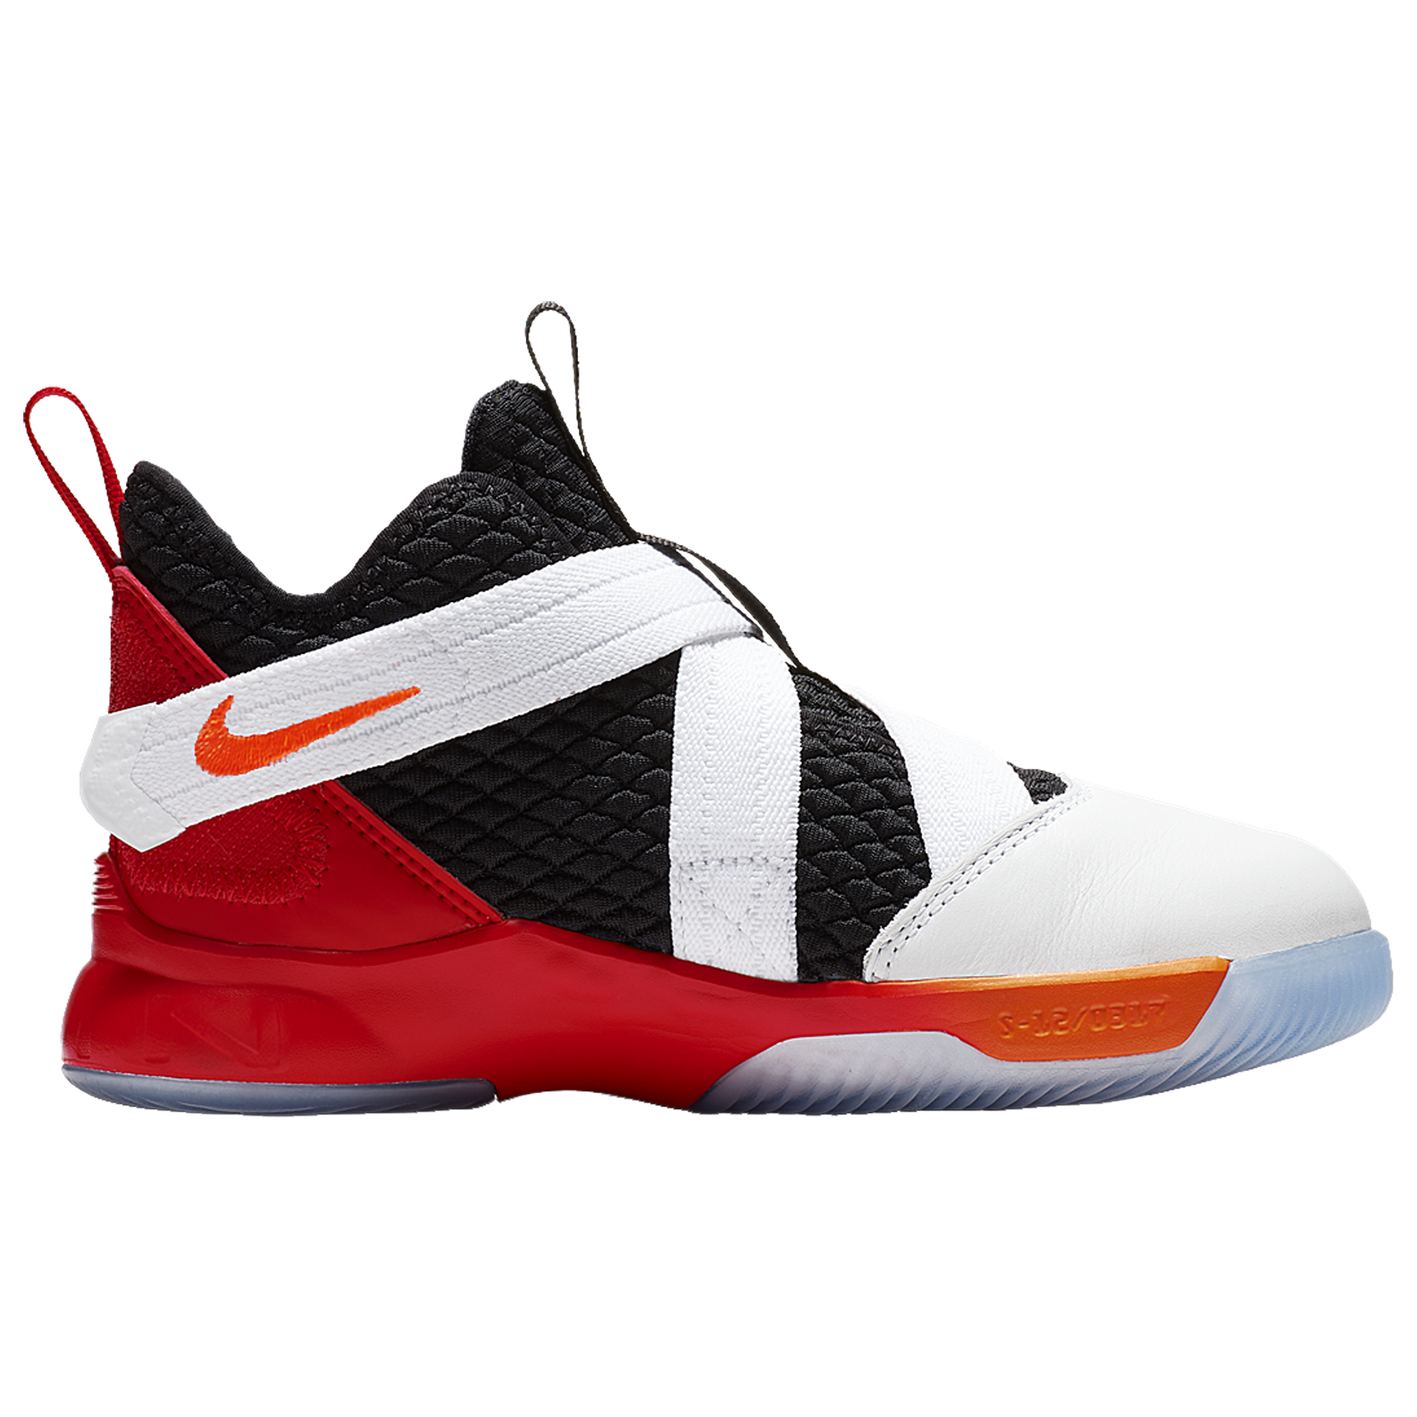 3c51a26ba71 Nike LeBron Soldier XII - Boys  Grade School - Basketball - Shoes ...